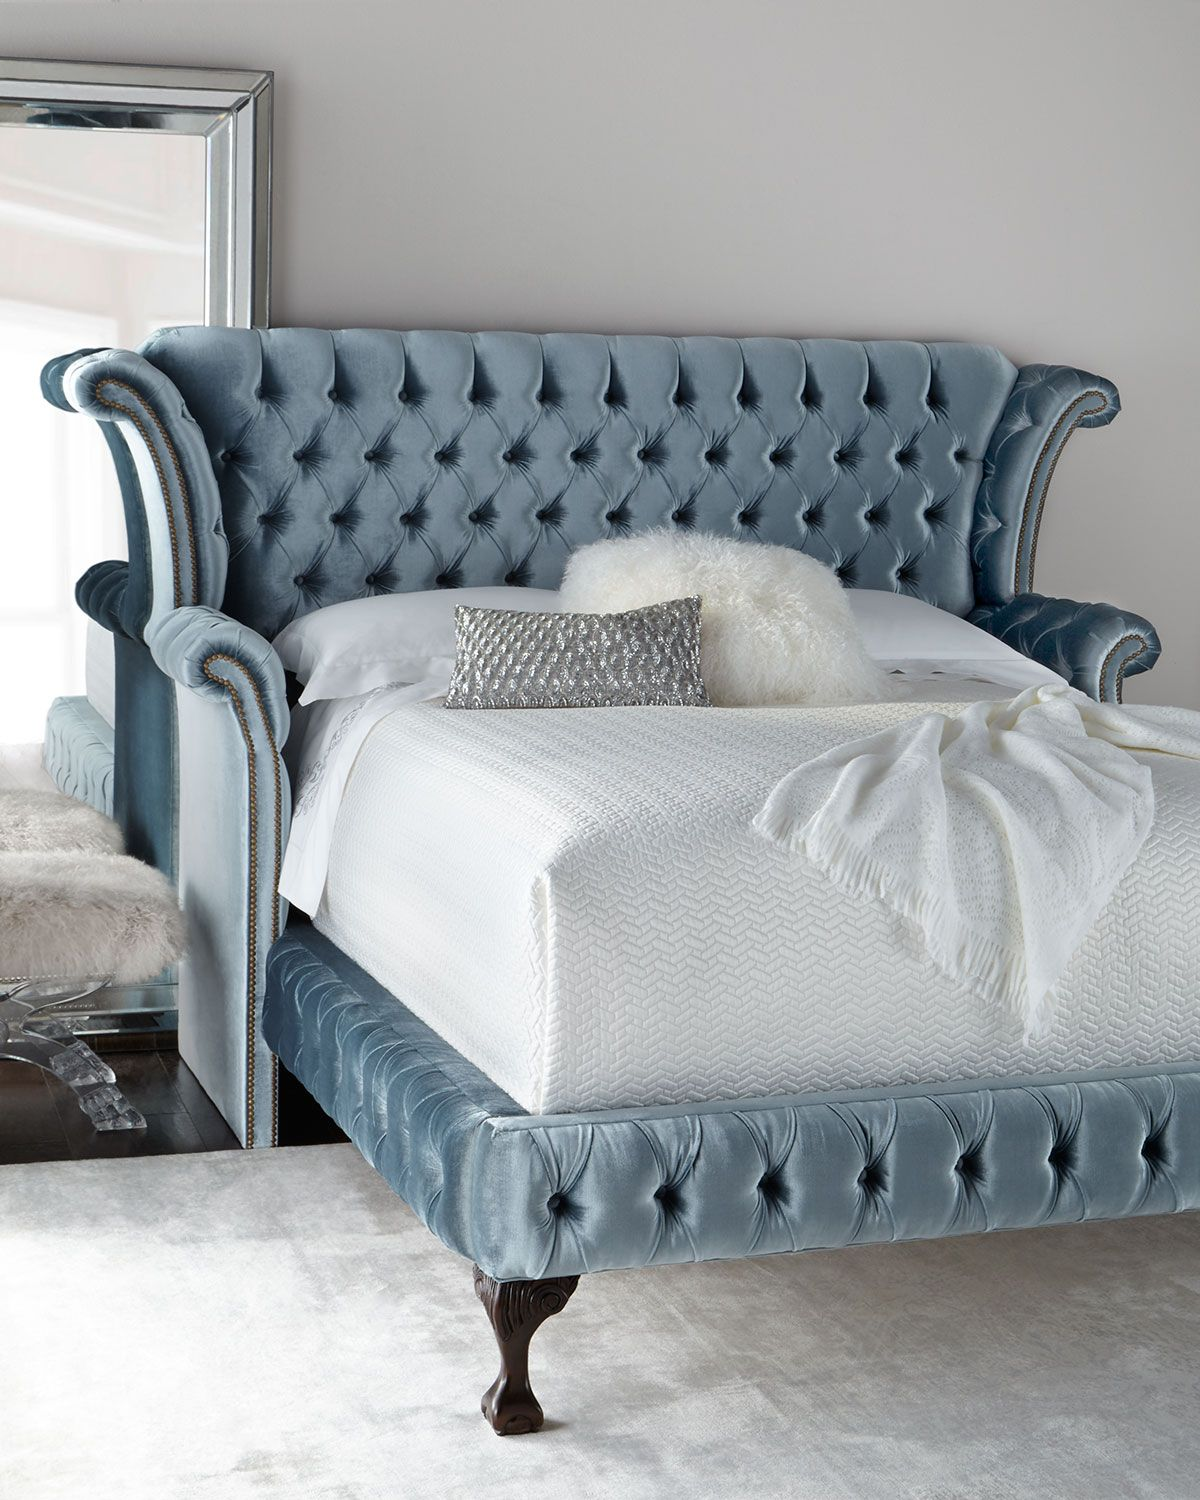 Master bedroom king bed Haute House Carter Teal Tufted King Bed  King beds Teal and Bedrooms